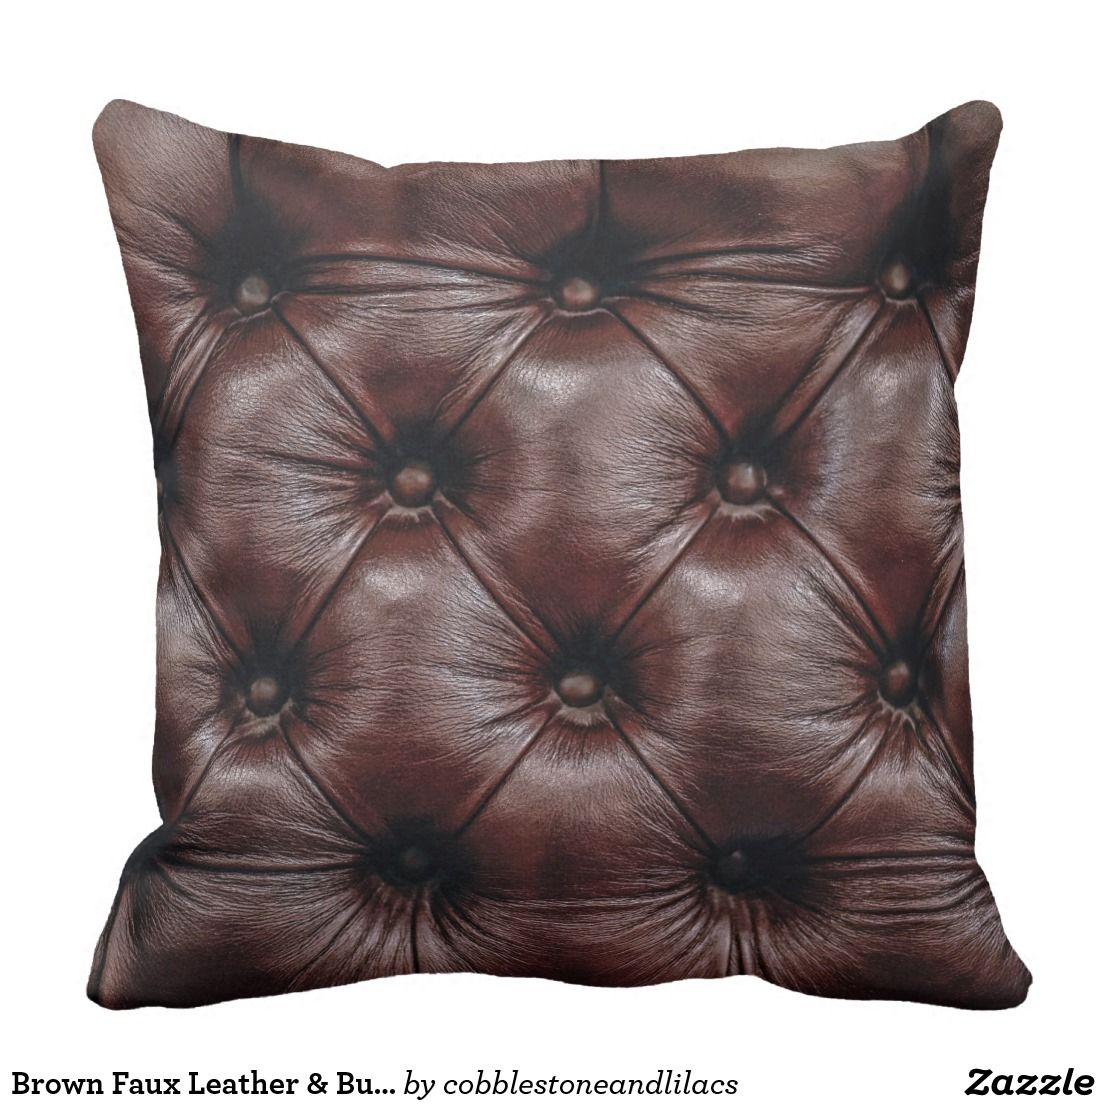 brown faux leather buttons not real